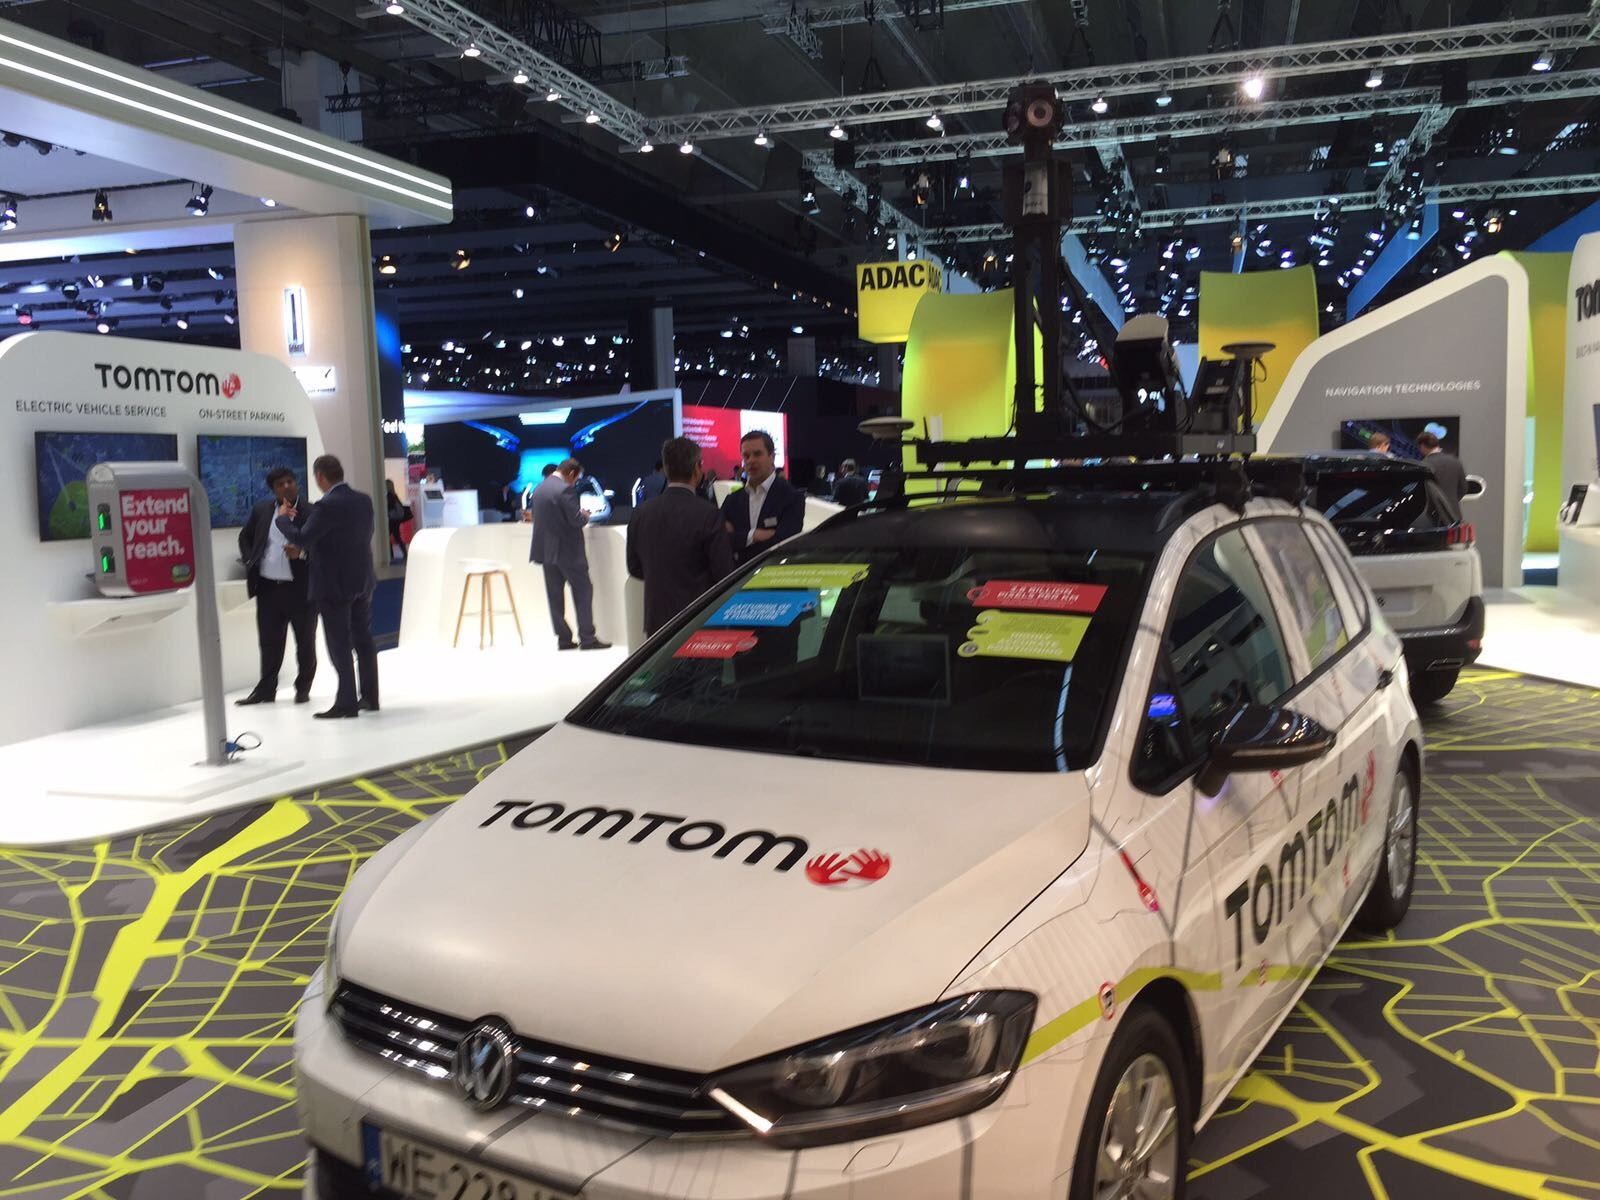 TomTom announced a deal with Daimler who will use TomTom maps for its infotainment platform in North America. They also showcase their real-time EV charging service, which has been developed to help EV drivers to make informed decisions about when and where to charge their vehicles, reducing range anxiety.